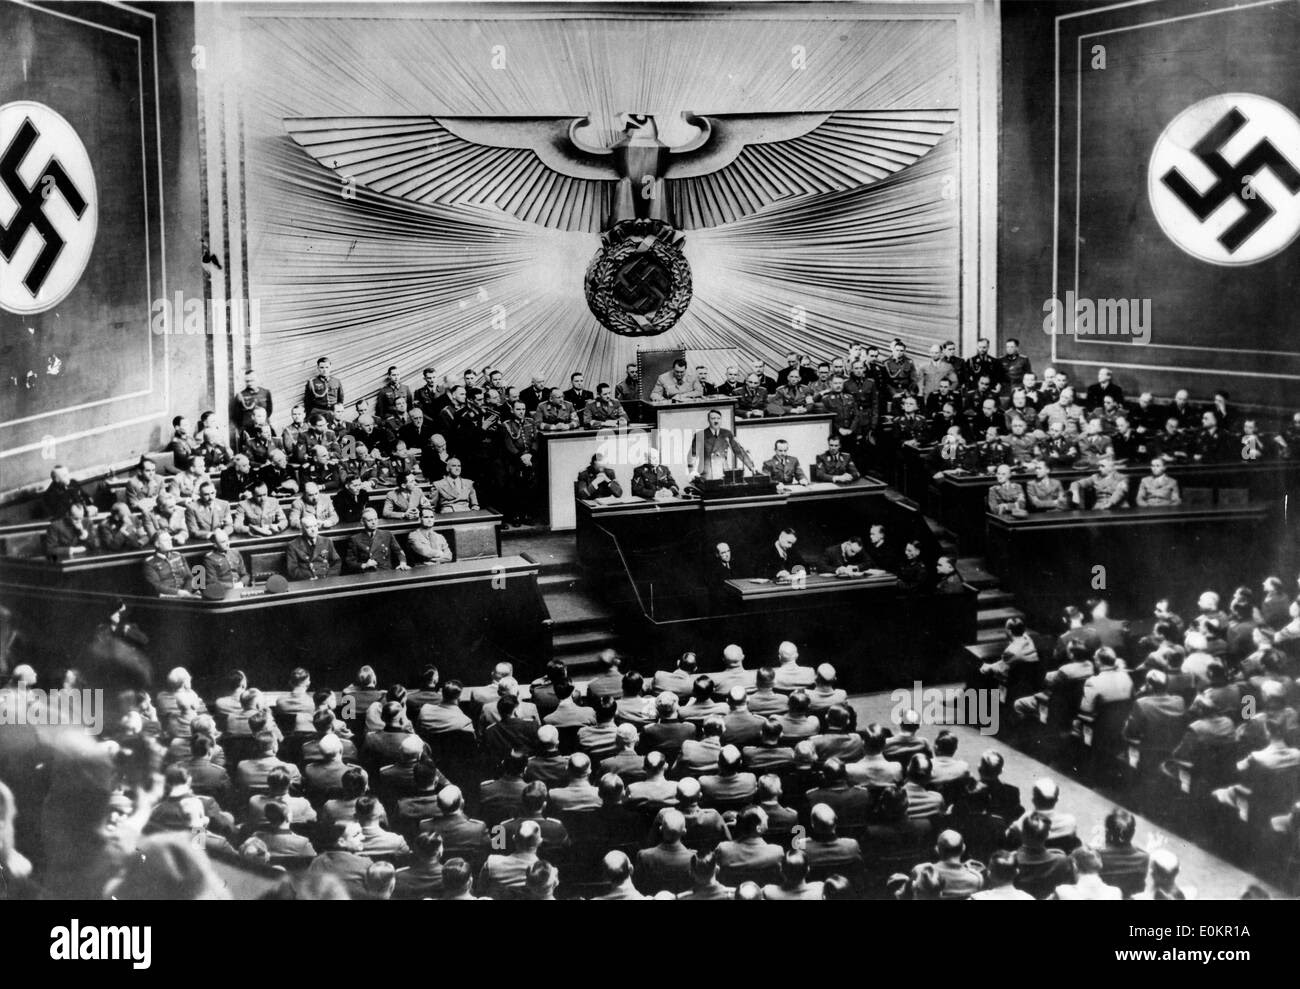 http://c8.alamy.com/comp/E0KR1A/adolf-hitler-during-a-meeting-at-the-reichstag-E0KR1A.jpg